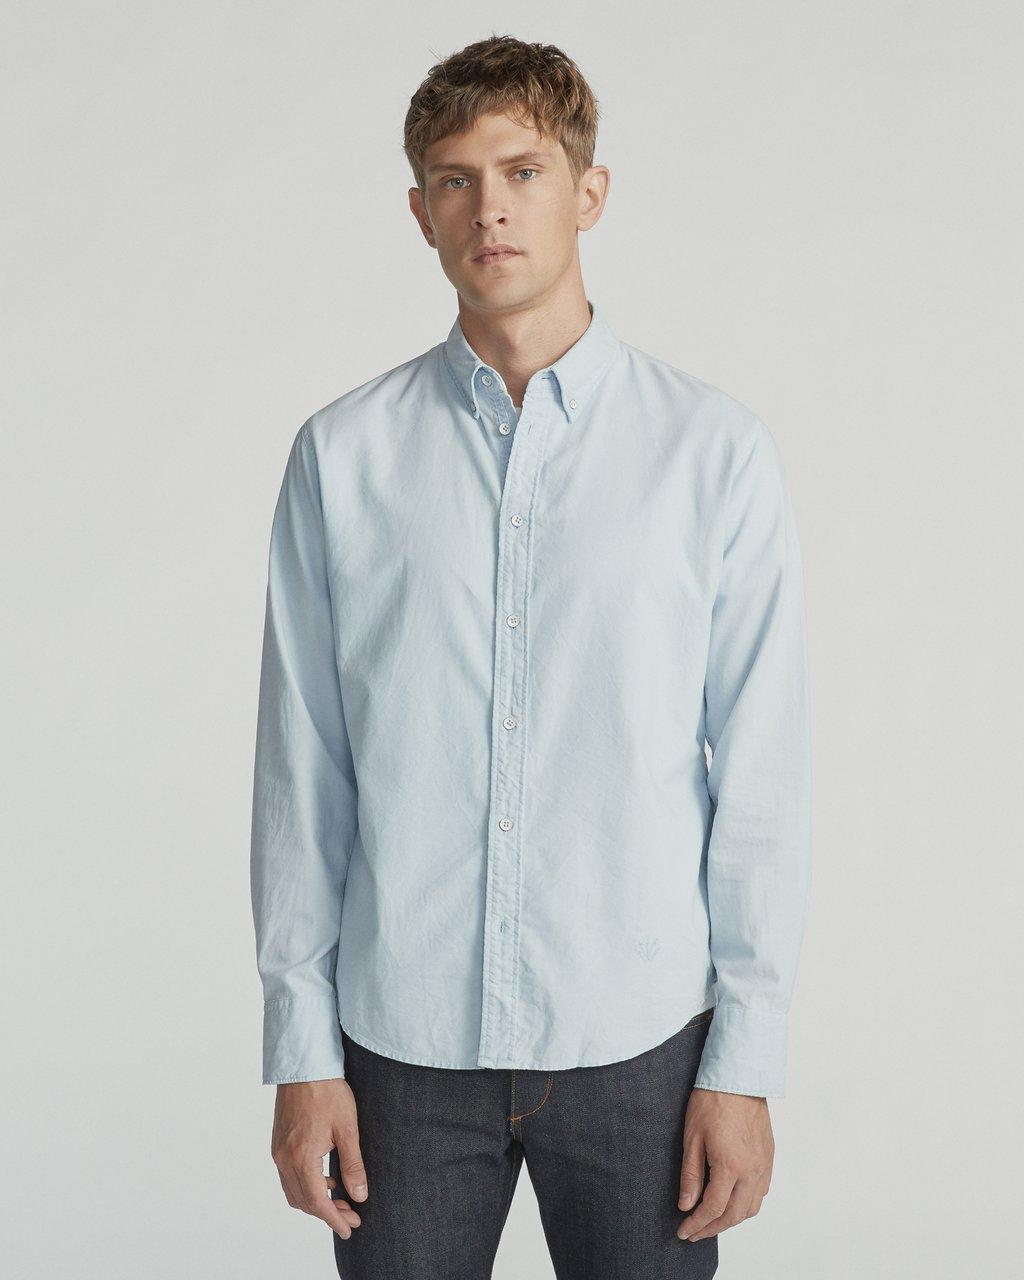 Fit 2 Tomlin Shirt - Cotton